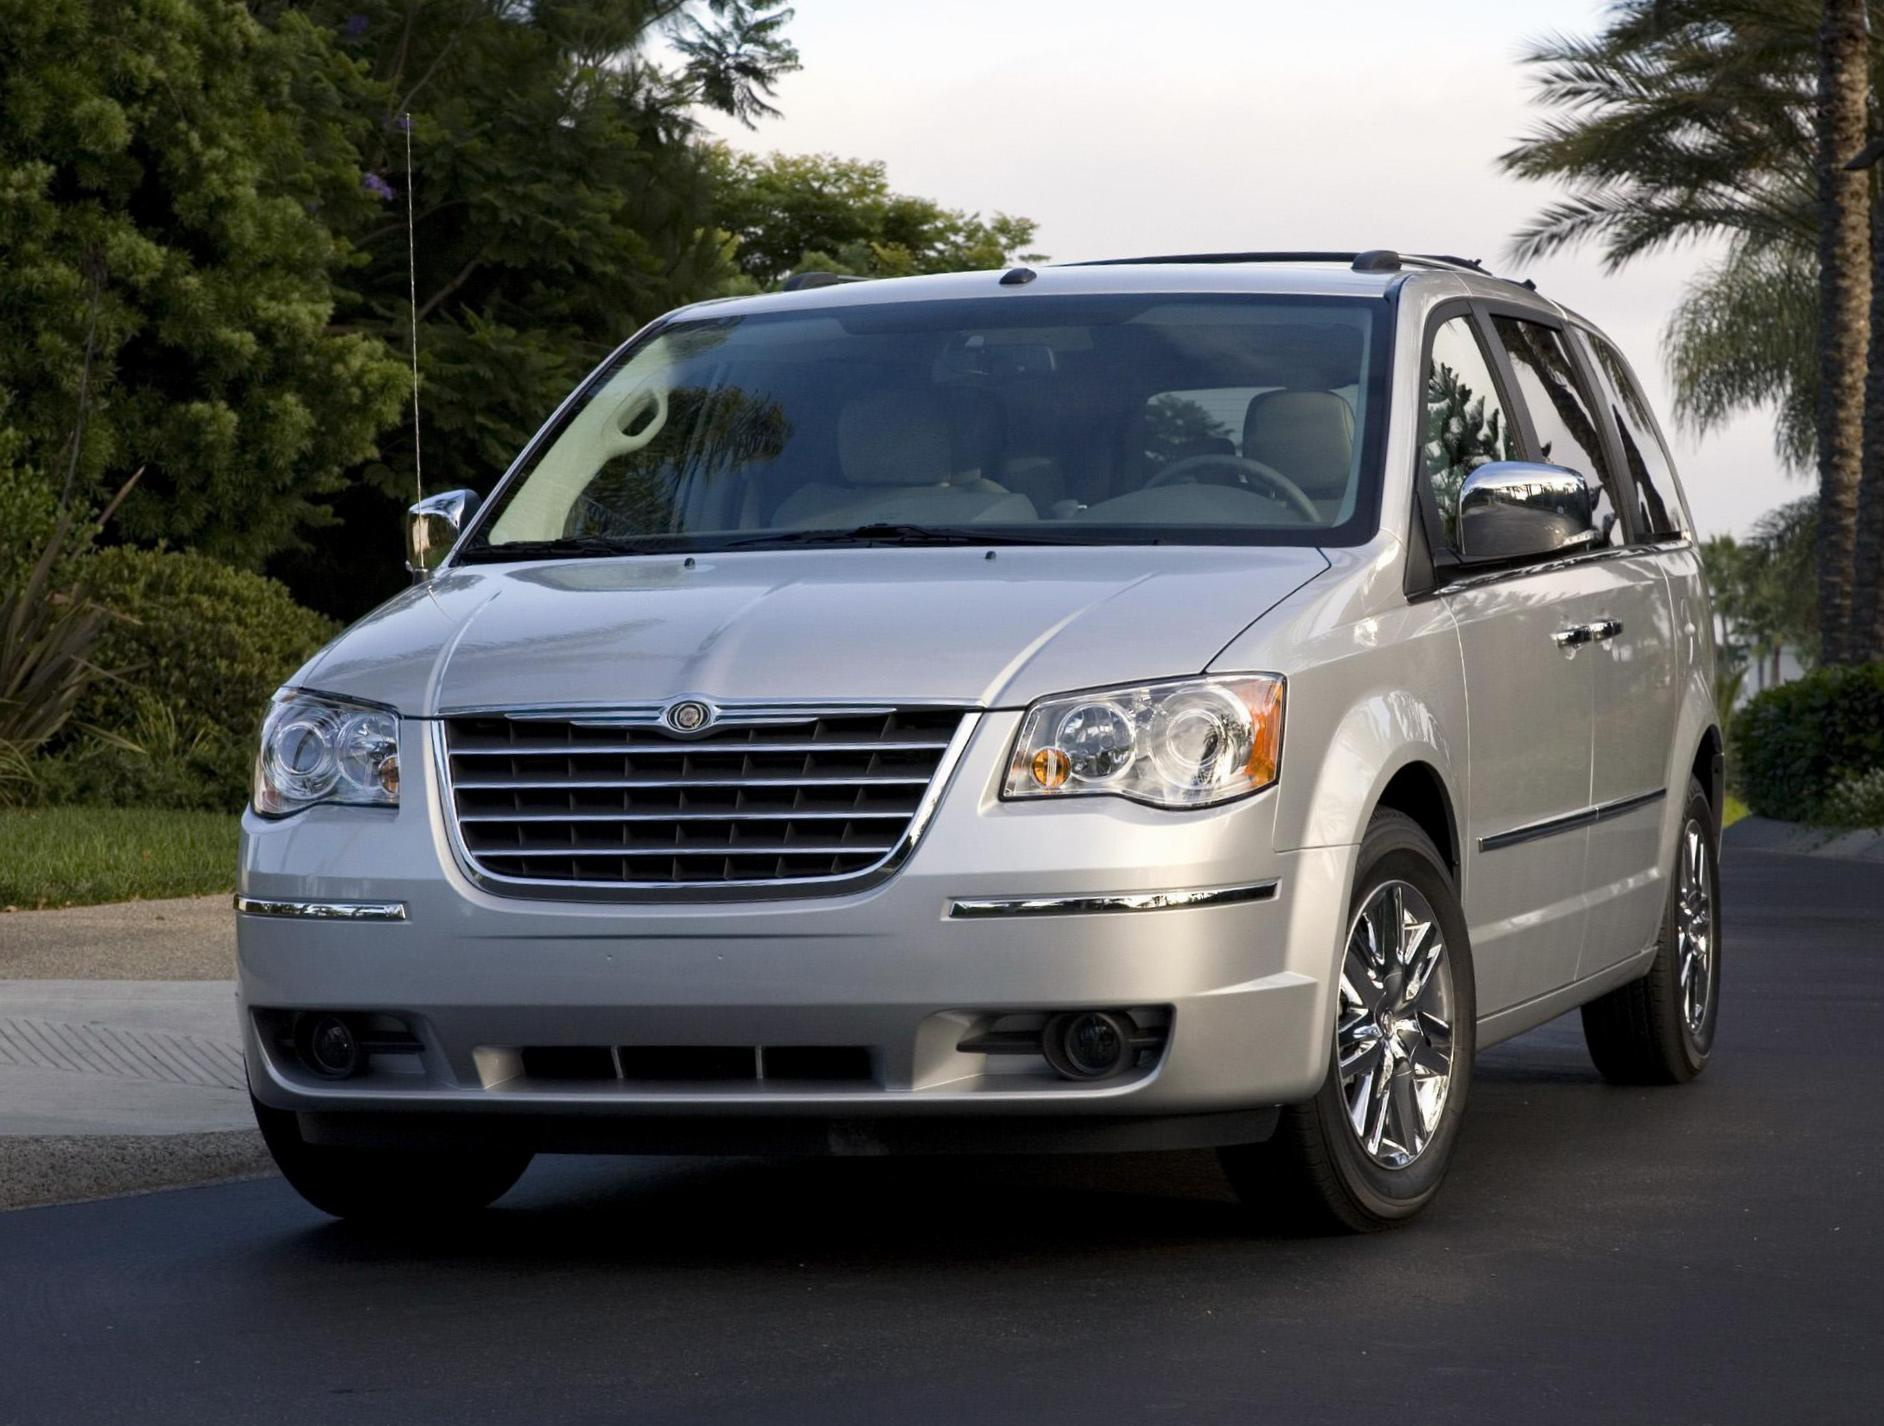 Grand Voyager Chrysler auto 2011